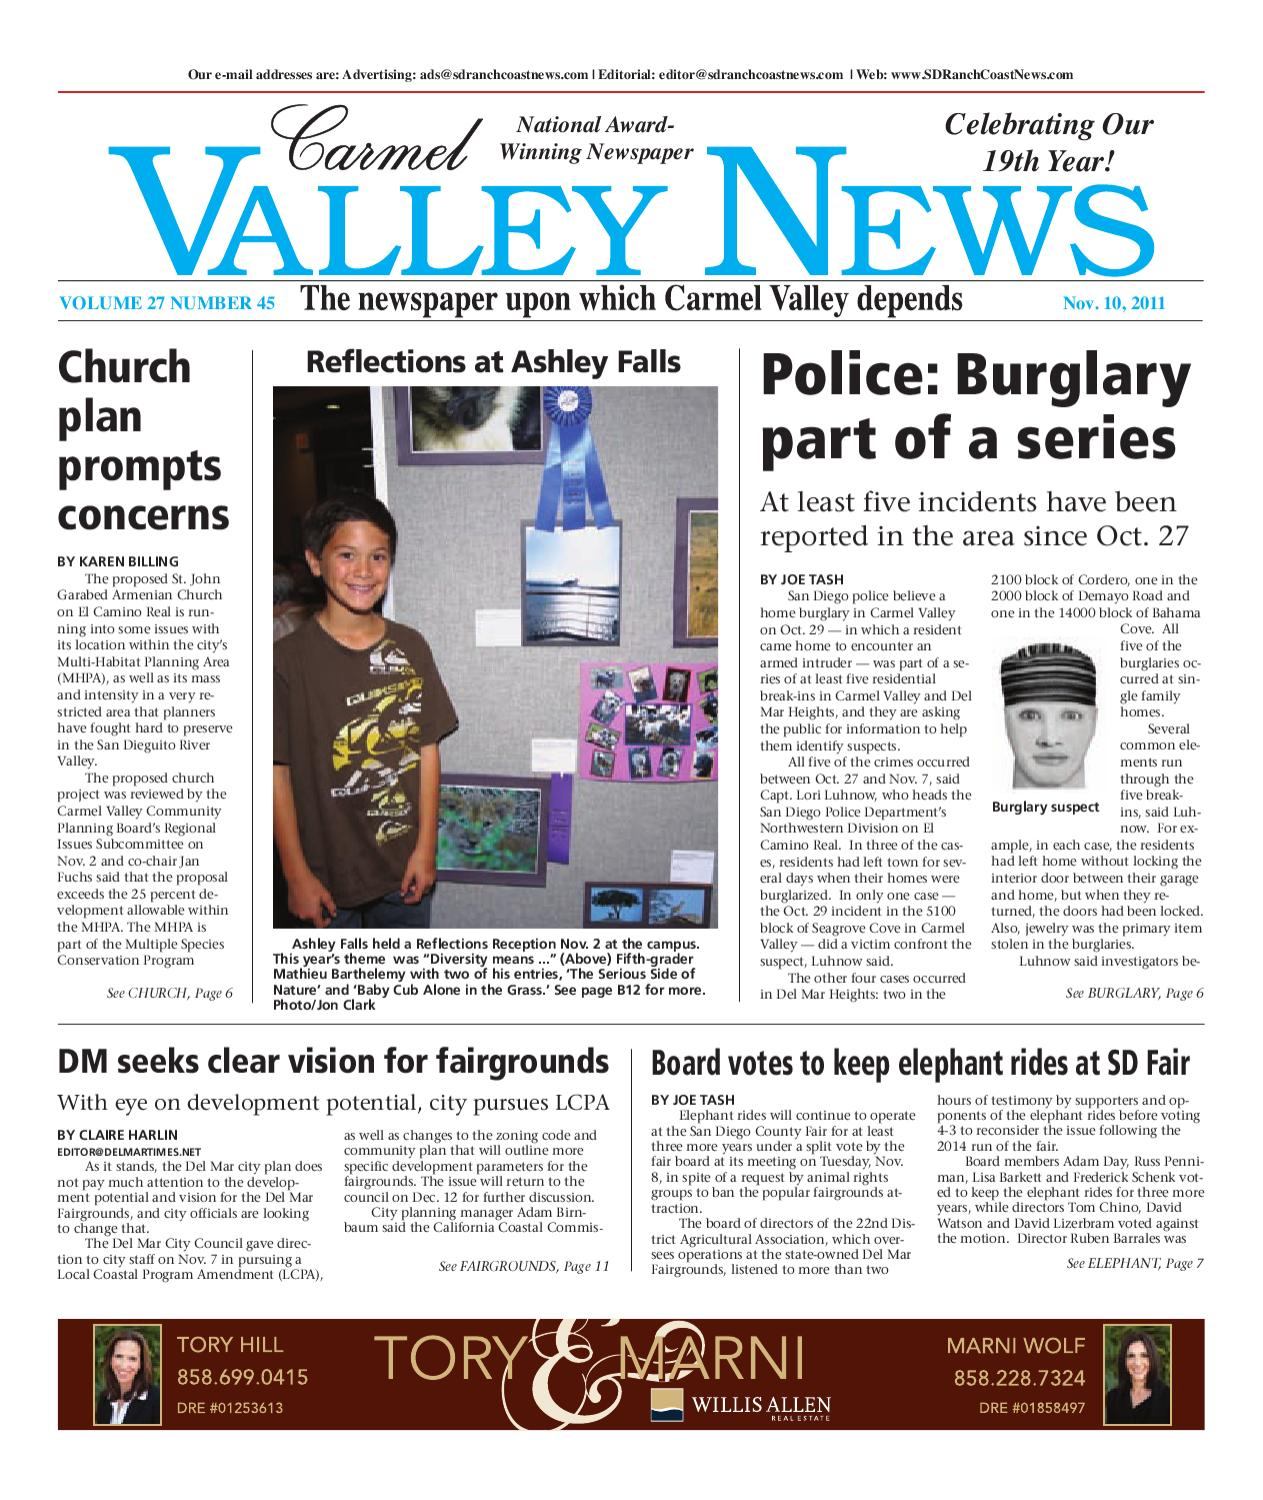 11 10 2011 carmel valley news by mainstreet media issuu fandeluxe Choice Image